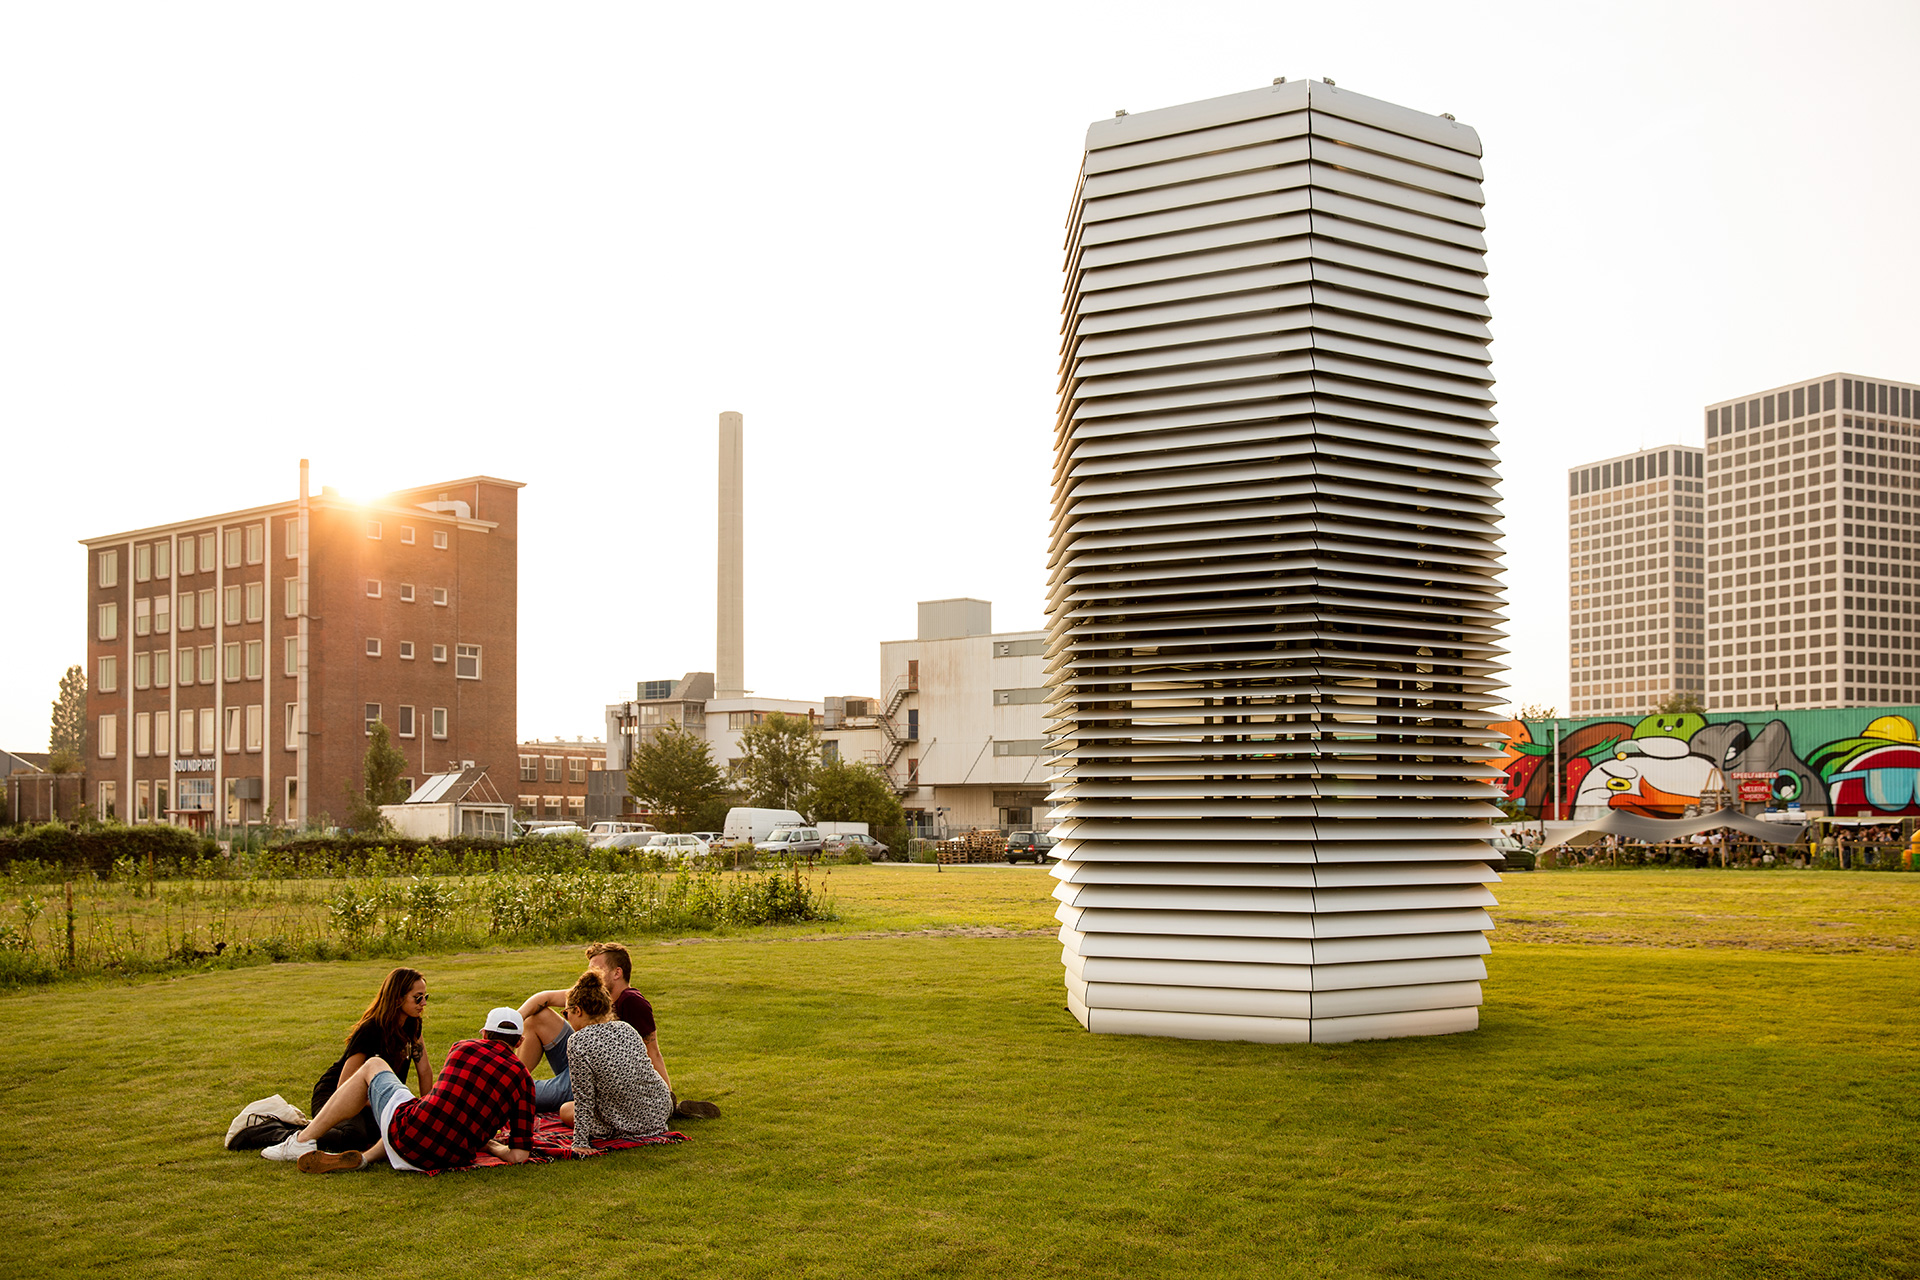 The Smog Free Tower employed in public parks to clean the air| The Smog Free Project | Daan Roosegaarde | STIRworld